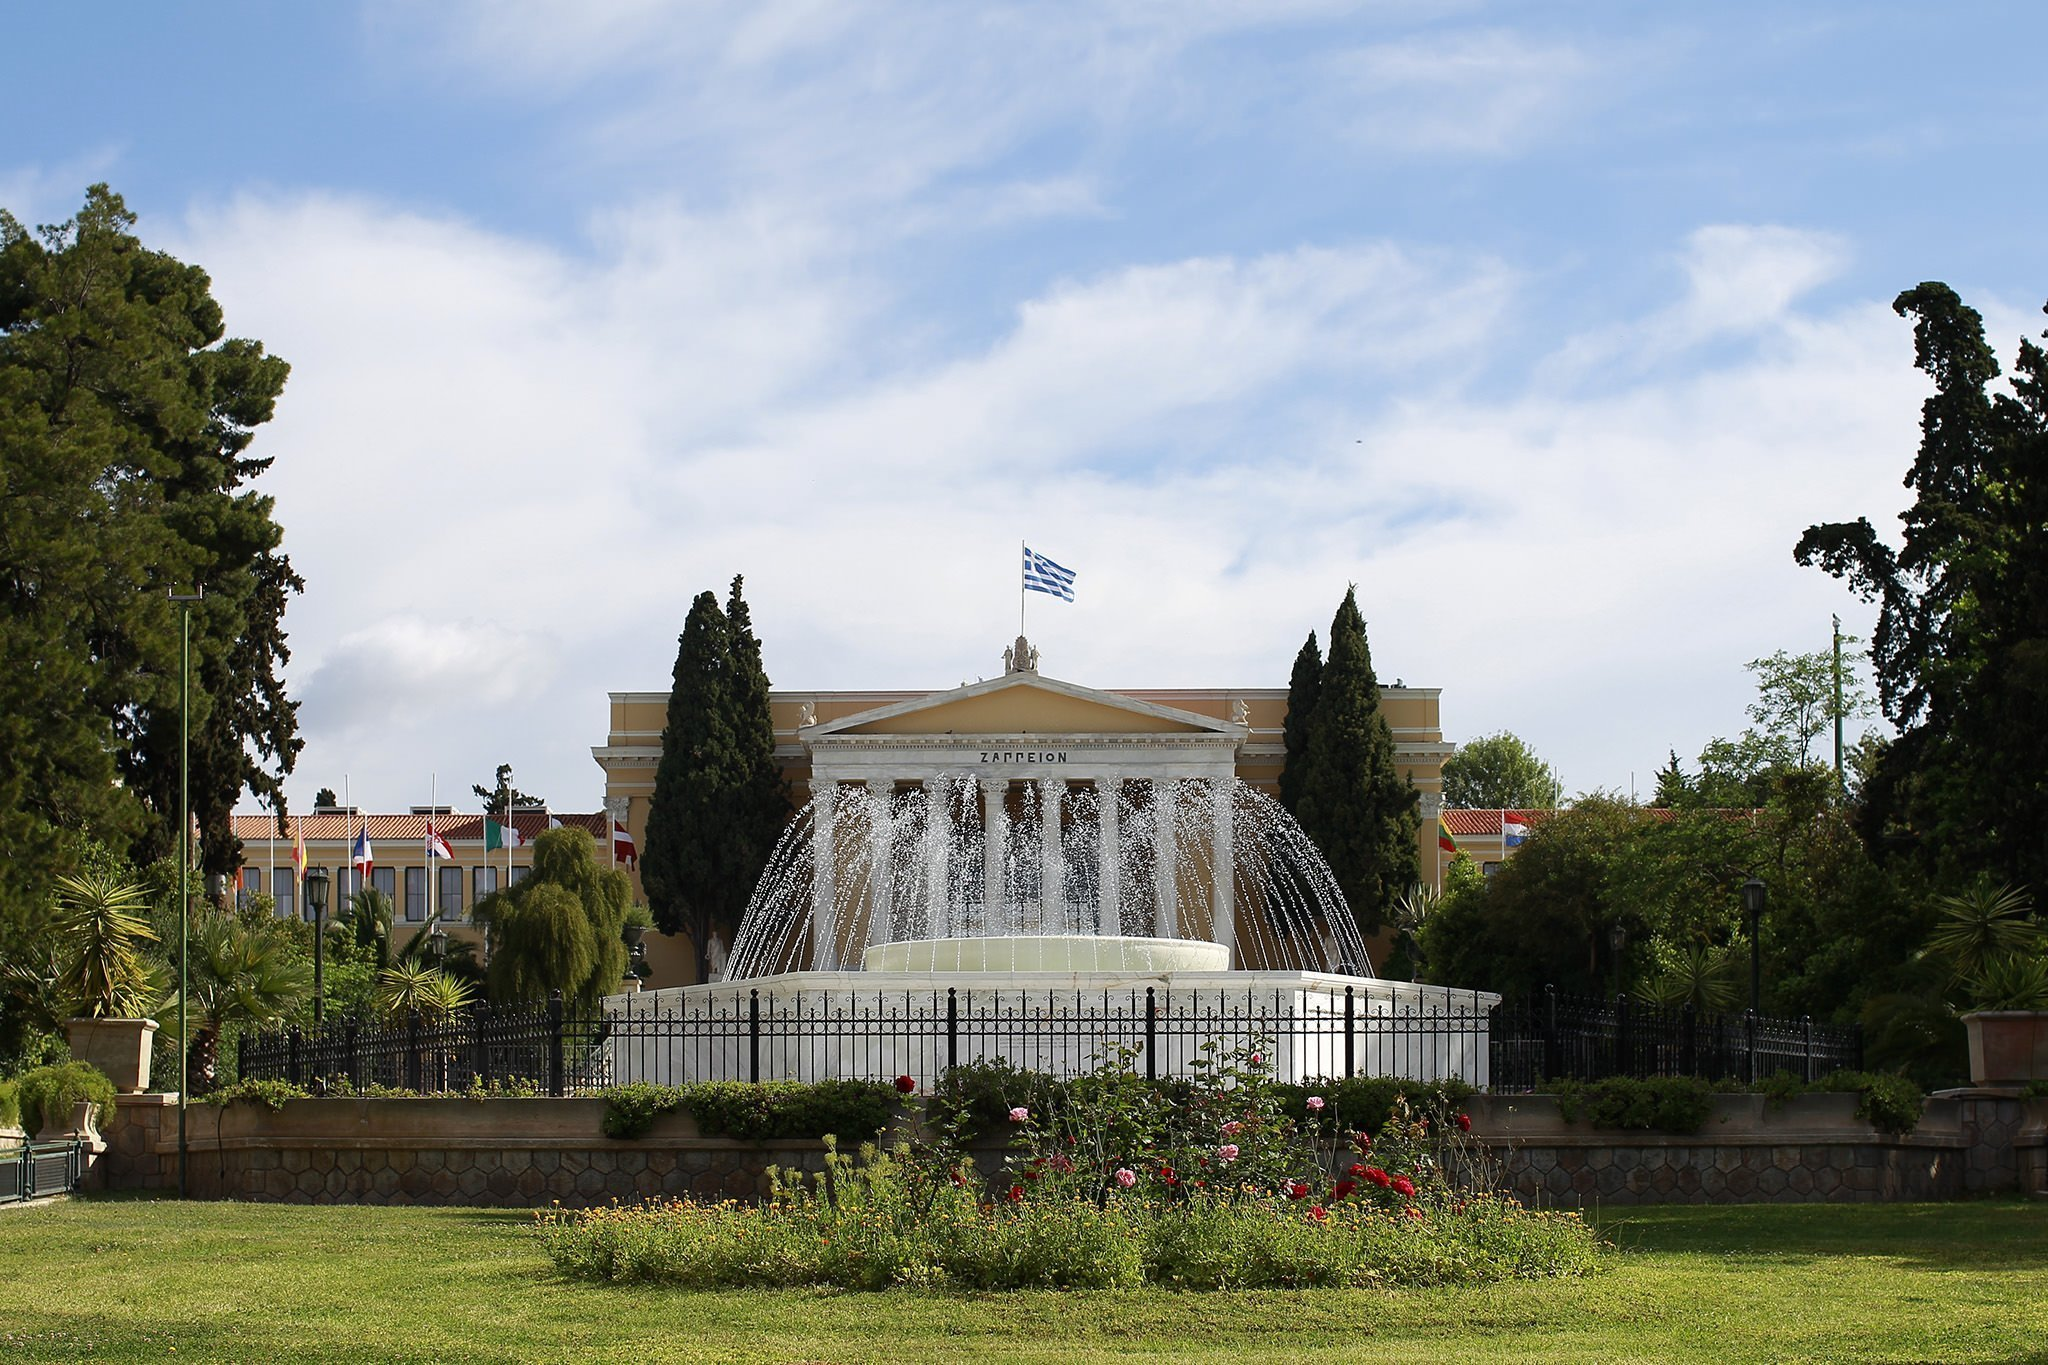 Athens tours, join a Morning Photography Tour visiting most iconic spots of the Greek capital